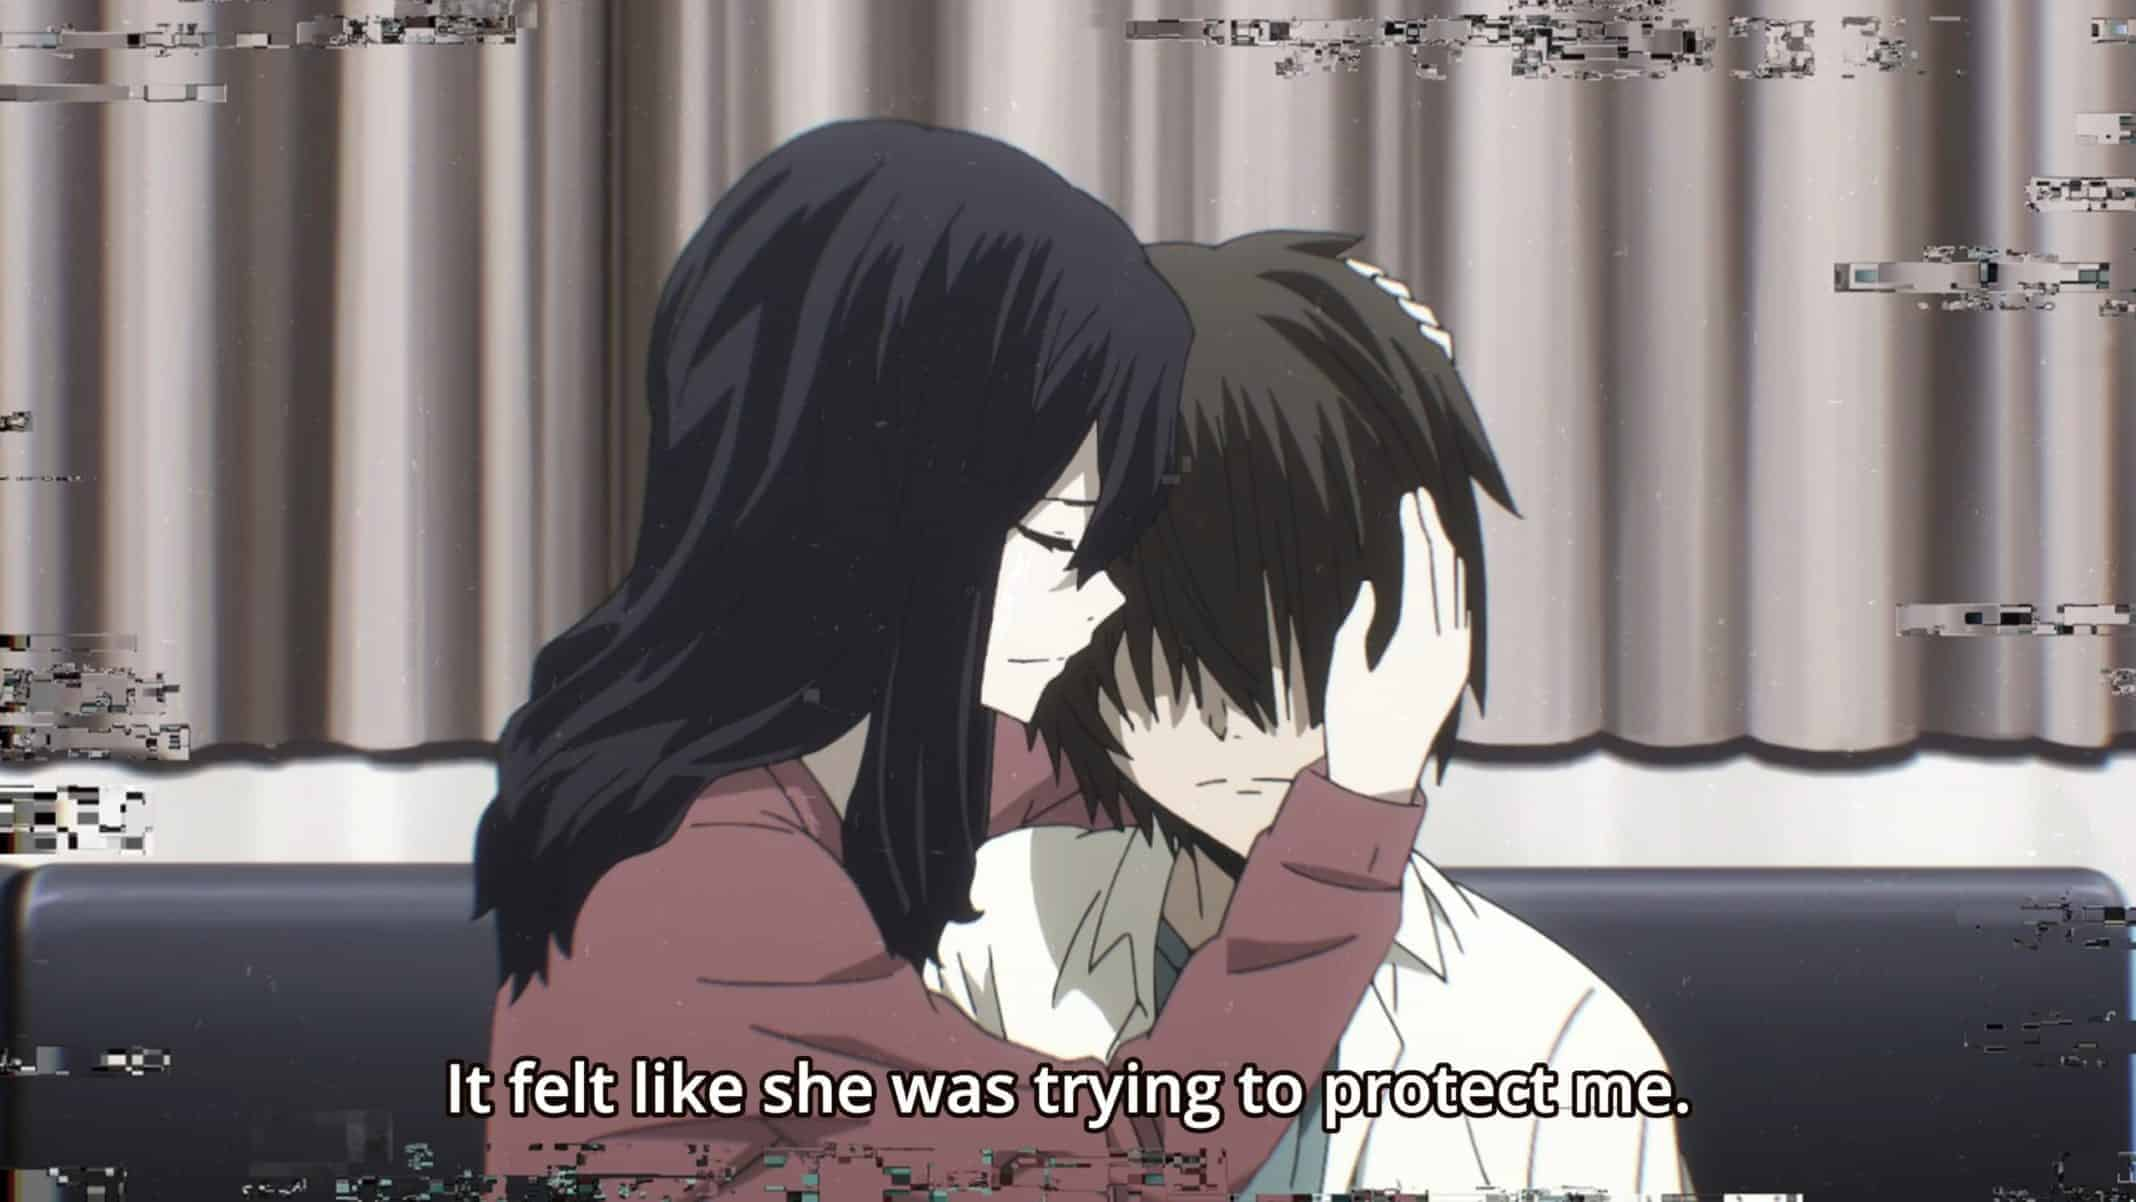 Elena (Hanazawa Kana) embracing Shuuichi (Hanae Natsuki) as he deals with the death of his parents | Gleipnir